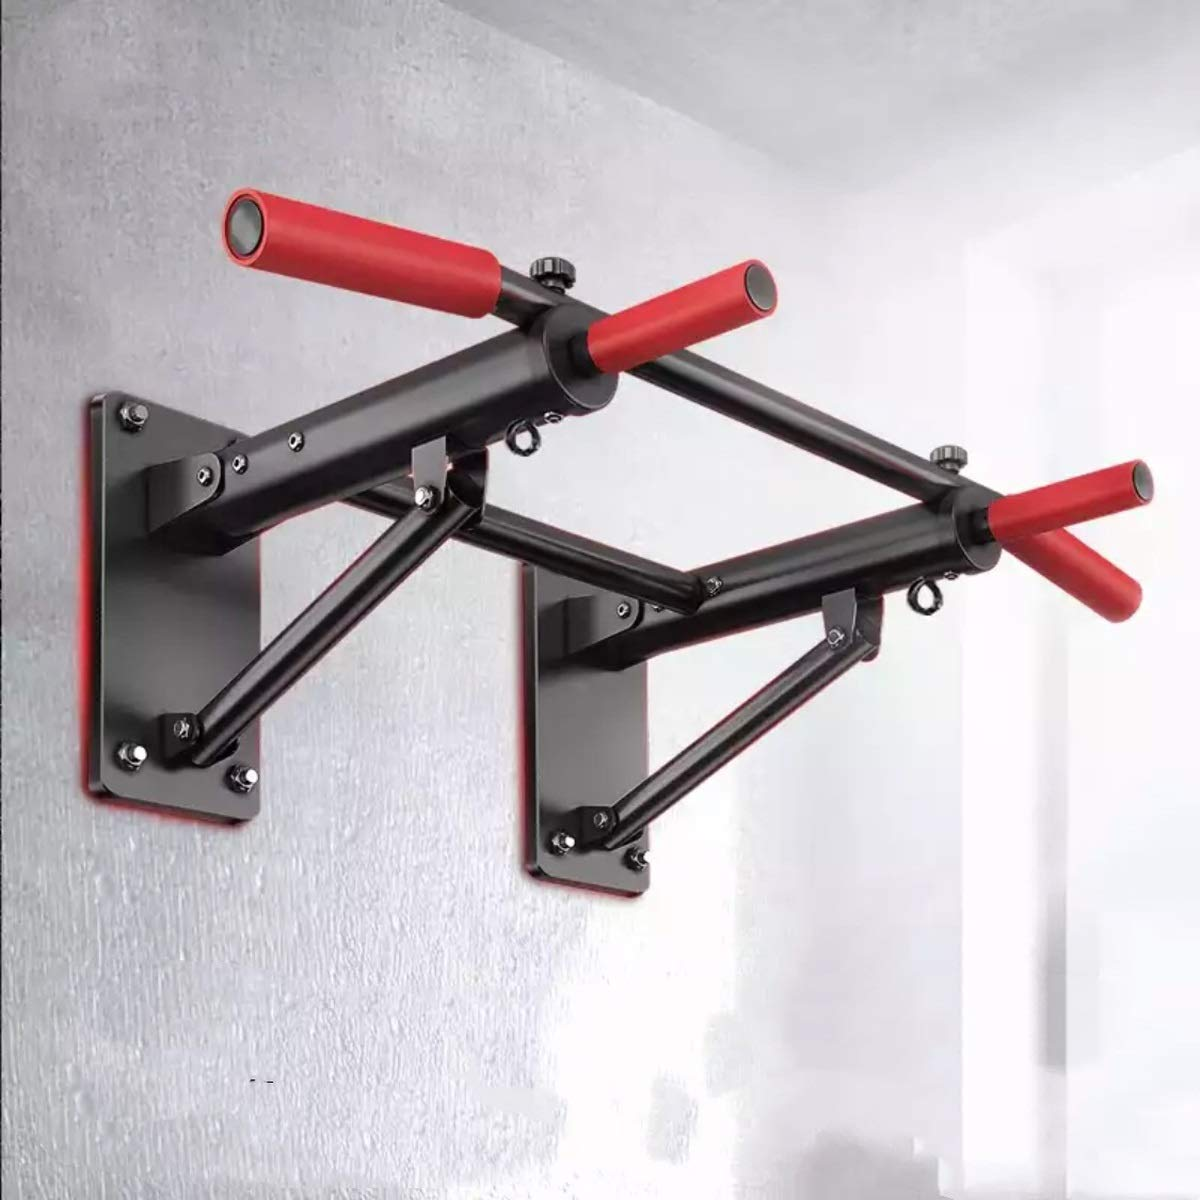 Multi-Function Wall Horizontal Bar Indoor Pull-up Device Foldable Wall Horizontal Bar Home Fitness Equipment by Baianju